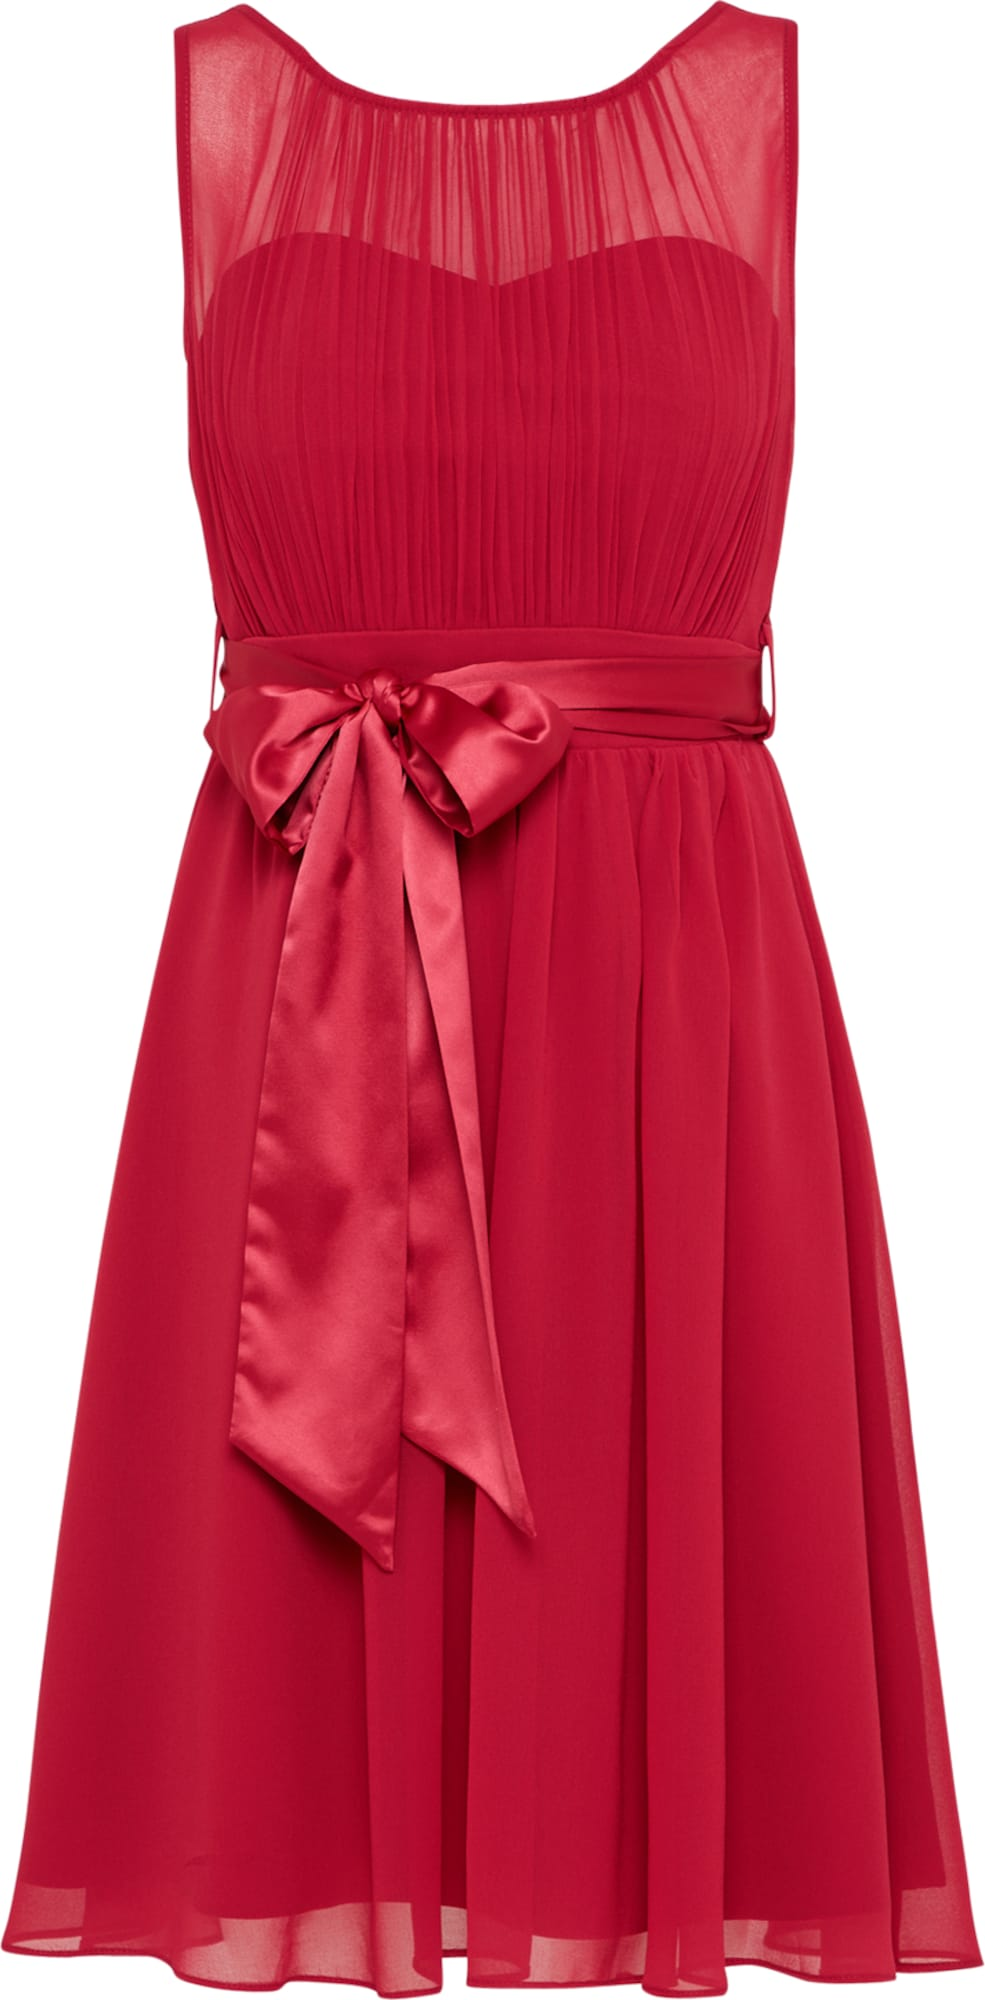 dorothy perkins occasion kleid 39 beth prom dress 39 in rot. Black Bedroom Furniture Sets. Home Design Ideas